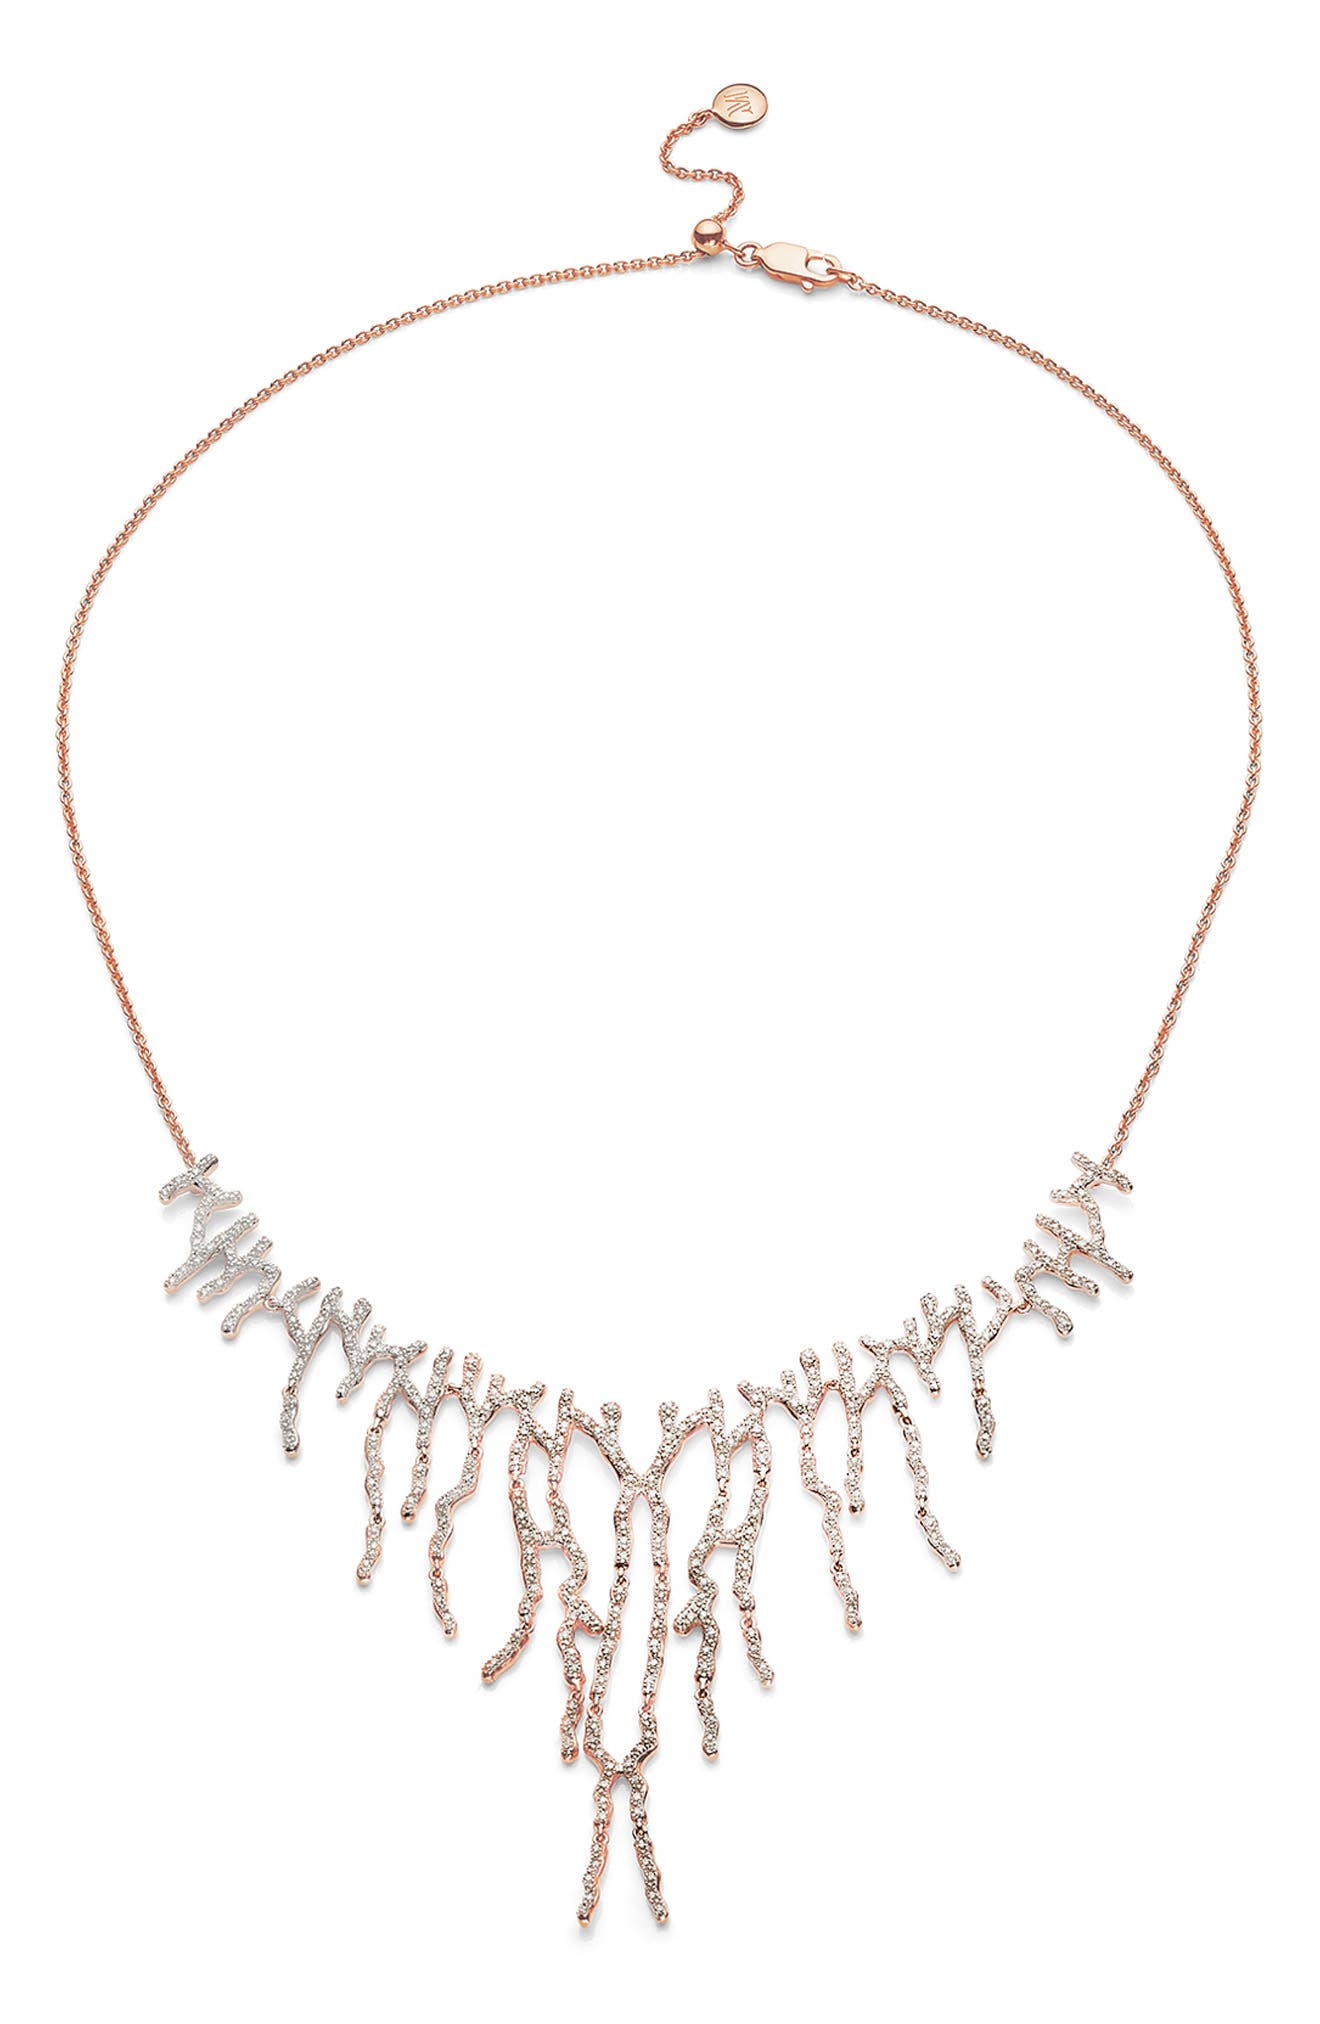 Riva Waterfall Cocktail Diamond Necklace,                         Main,                         color, ROSE GOLD/ DIAMOND